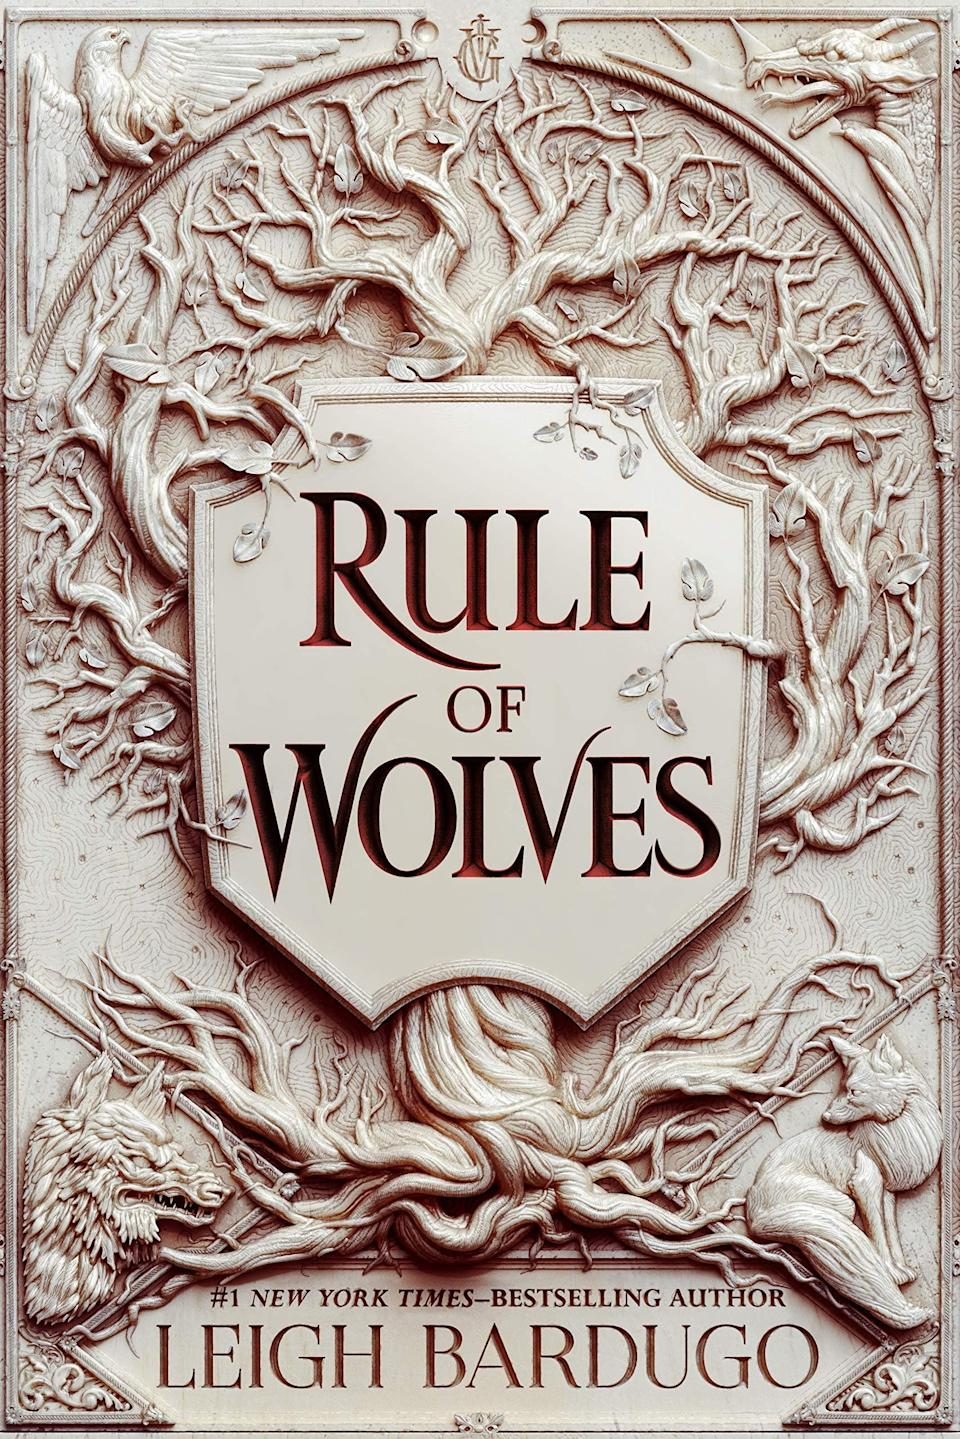 <p>Leigh Bardugo's Grishaverse stories continue in <span><strong>Rule of Wolves</strong></span>, the sequel to <strong>King of Scars</strong>. This time around, Nikolai, Zoya, and Nina will have to put everything on the line to keep their world from descending into darkness - even if it means acting against their own best interests. </p> <p><em>Out March 30</em></p>